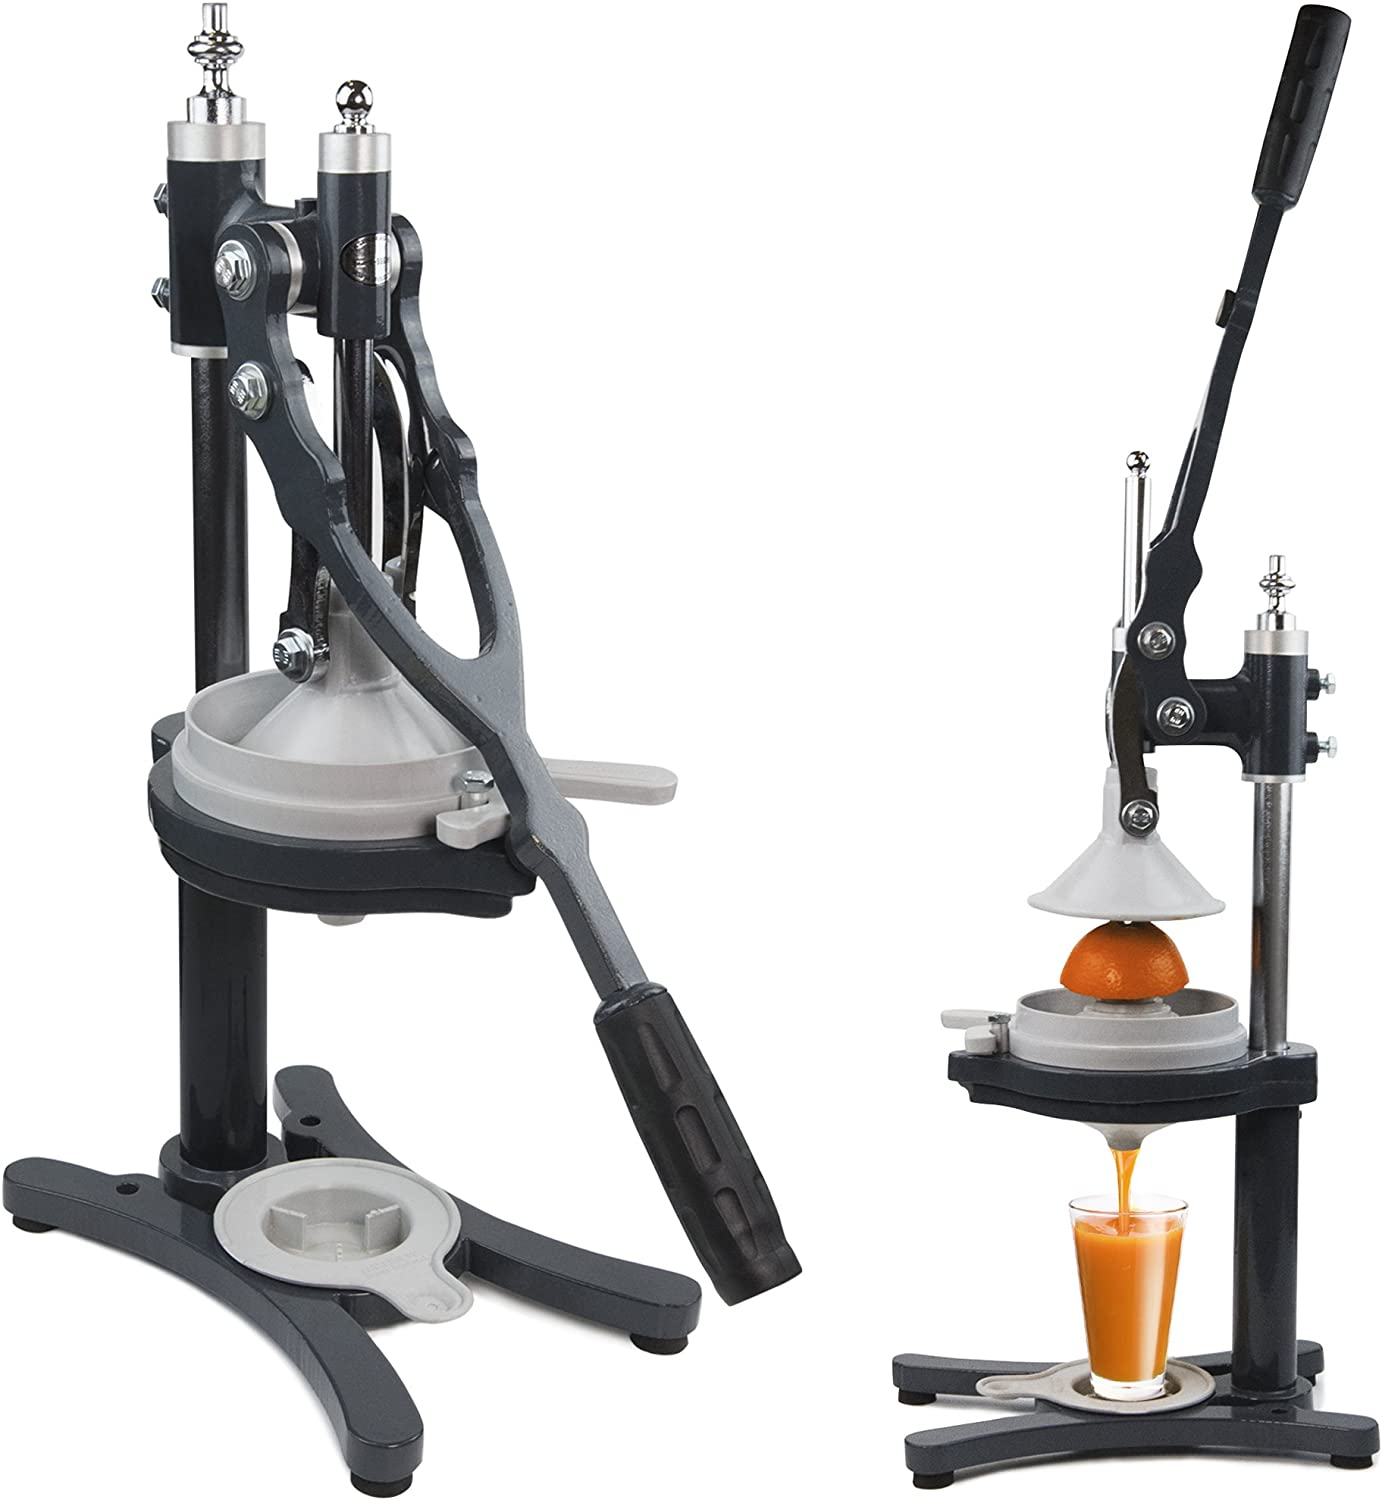 Best Hand Press Juicer 2021 Review